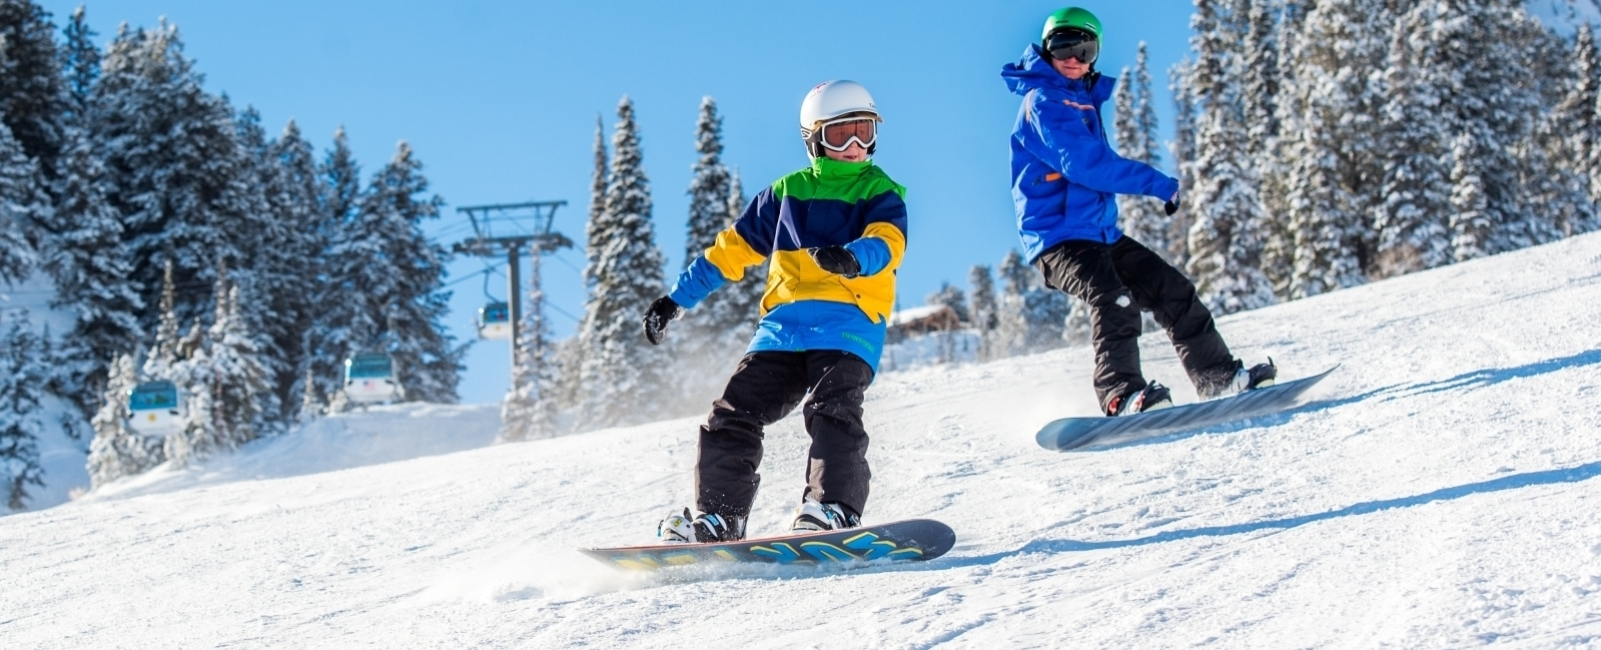 Utah's Best Snowboard Schools and Education Programs